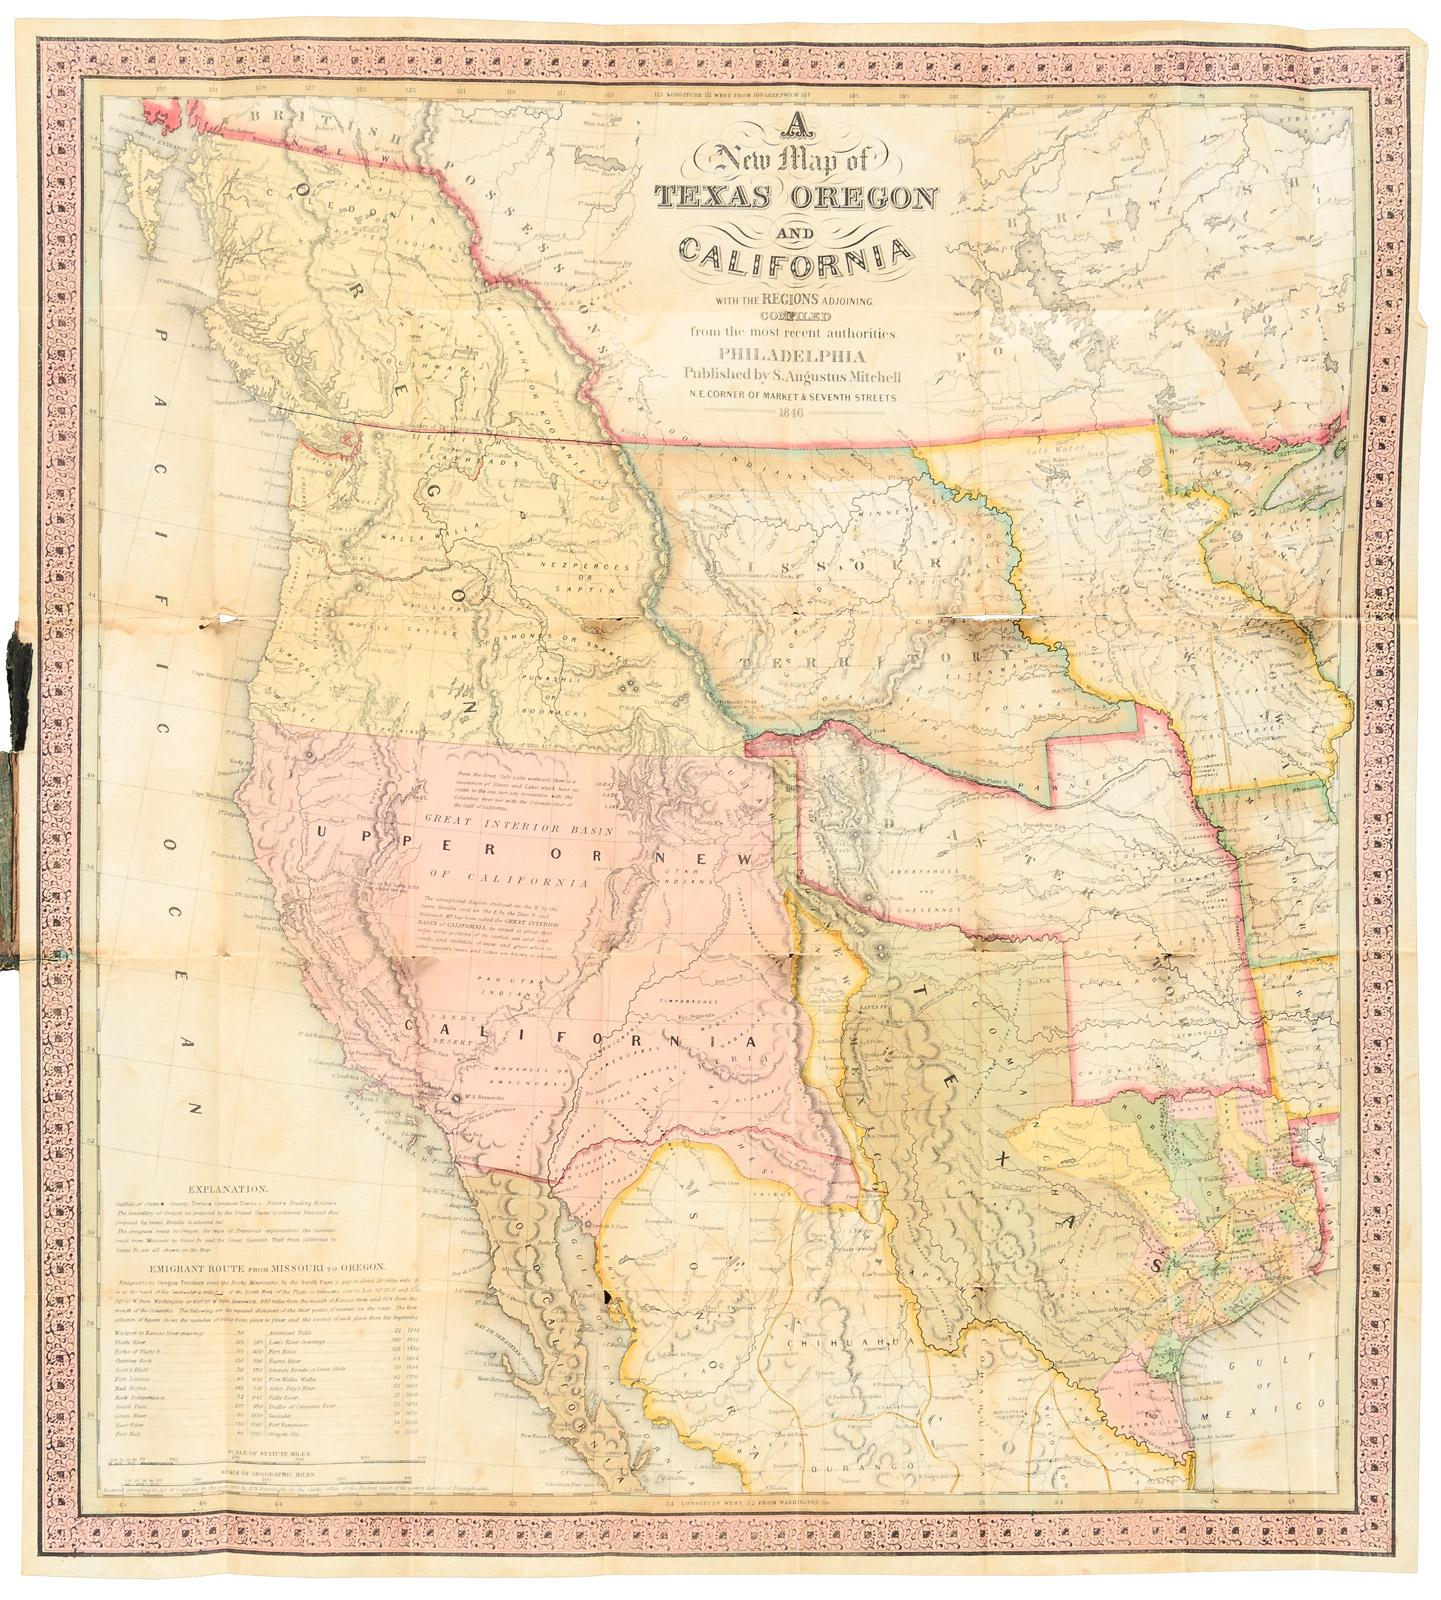 A New Map of Texas, Oregon and California, with the Regions